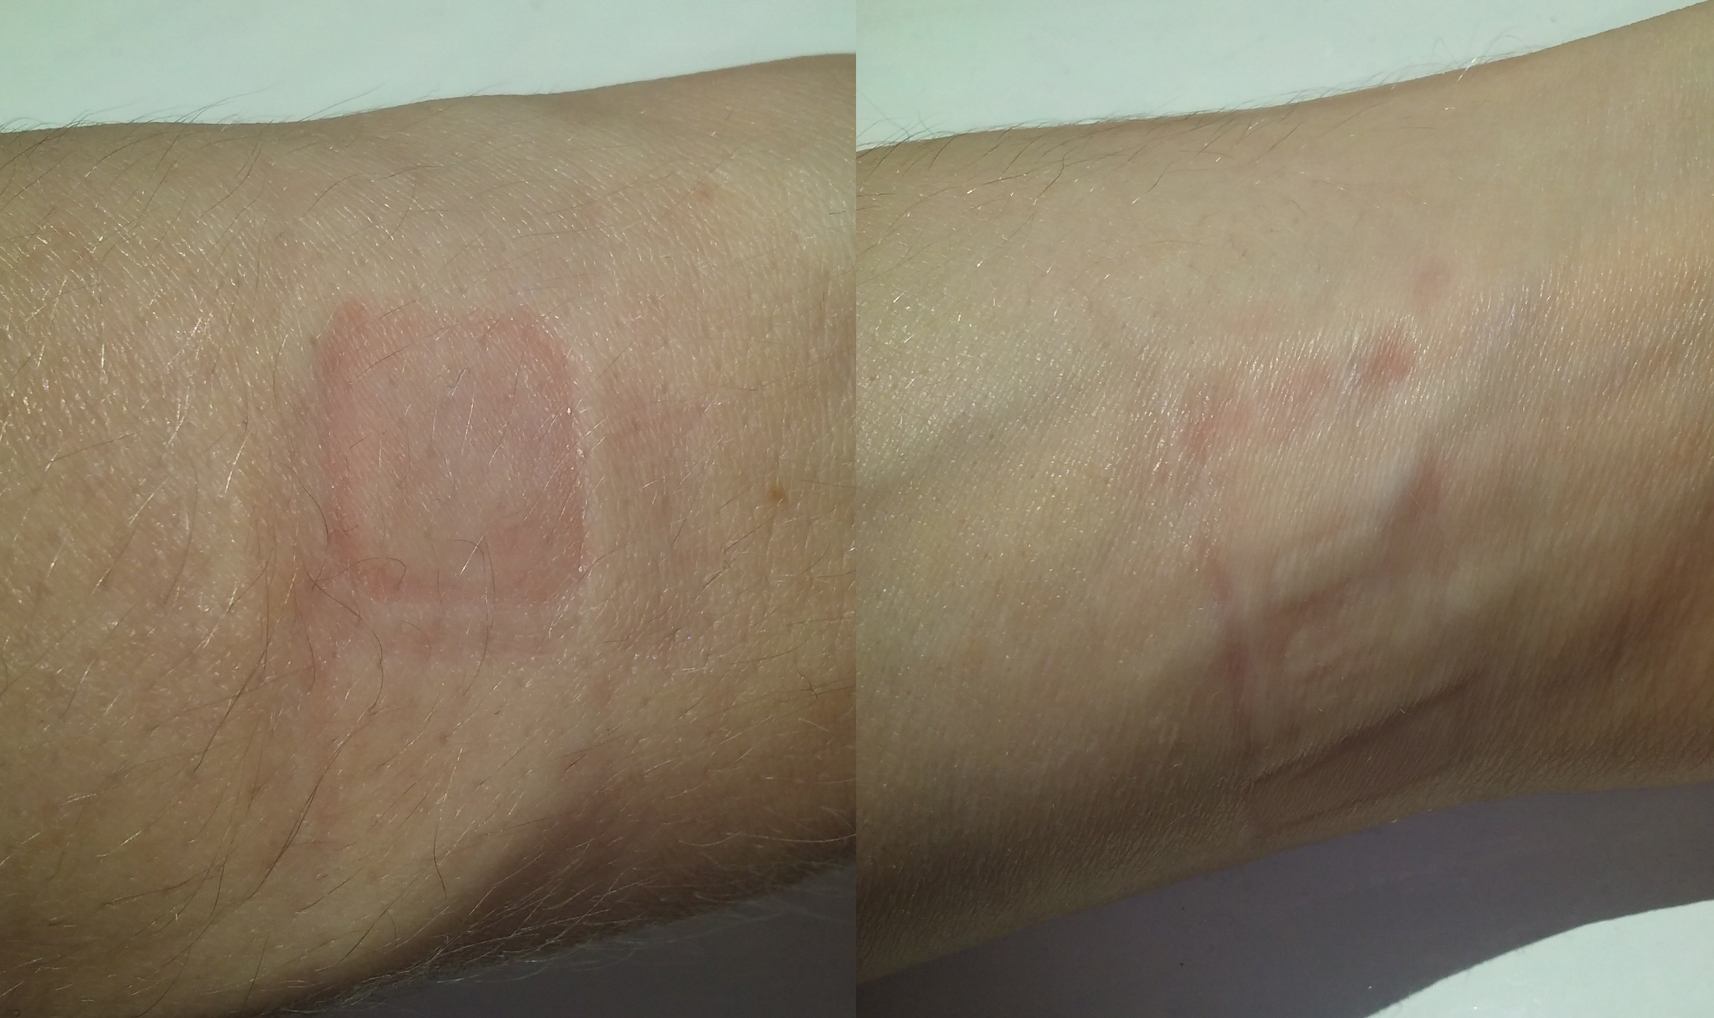 The imprint on my skin after a few hours of wearing Vivosmart HR